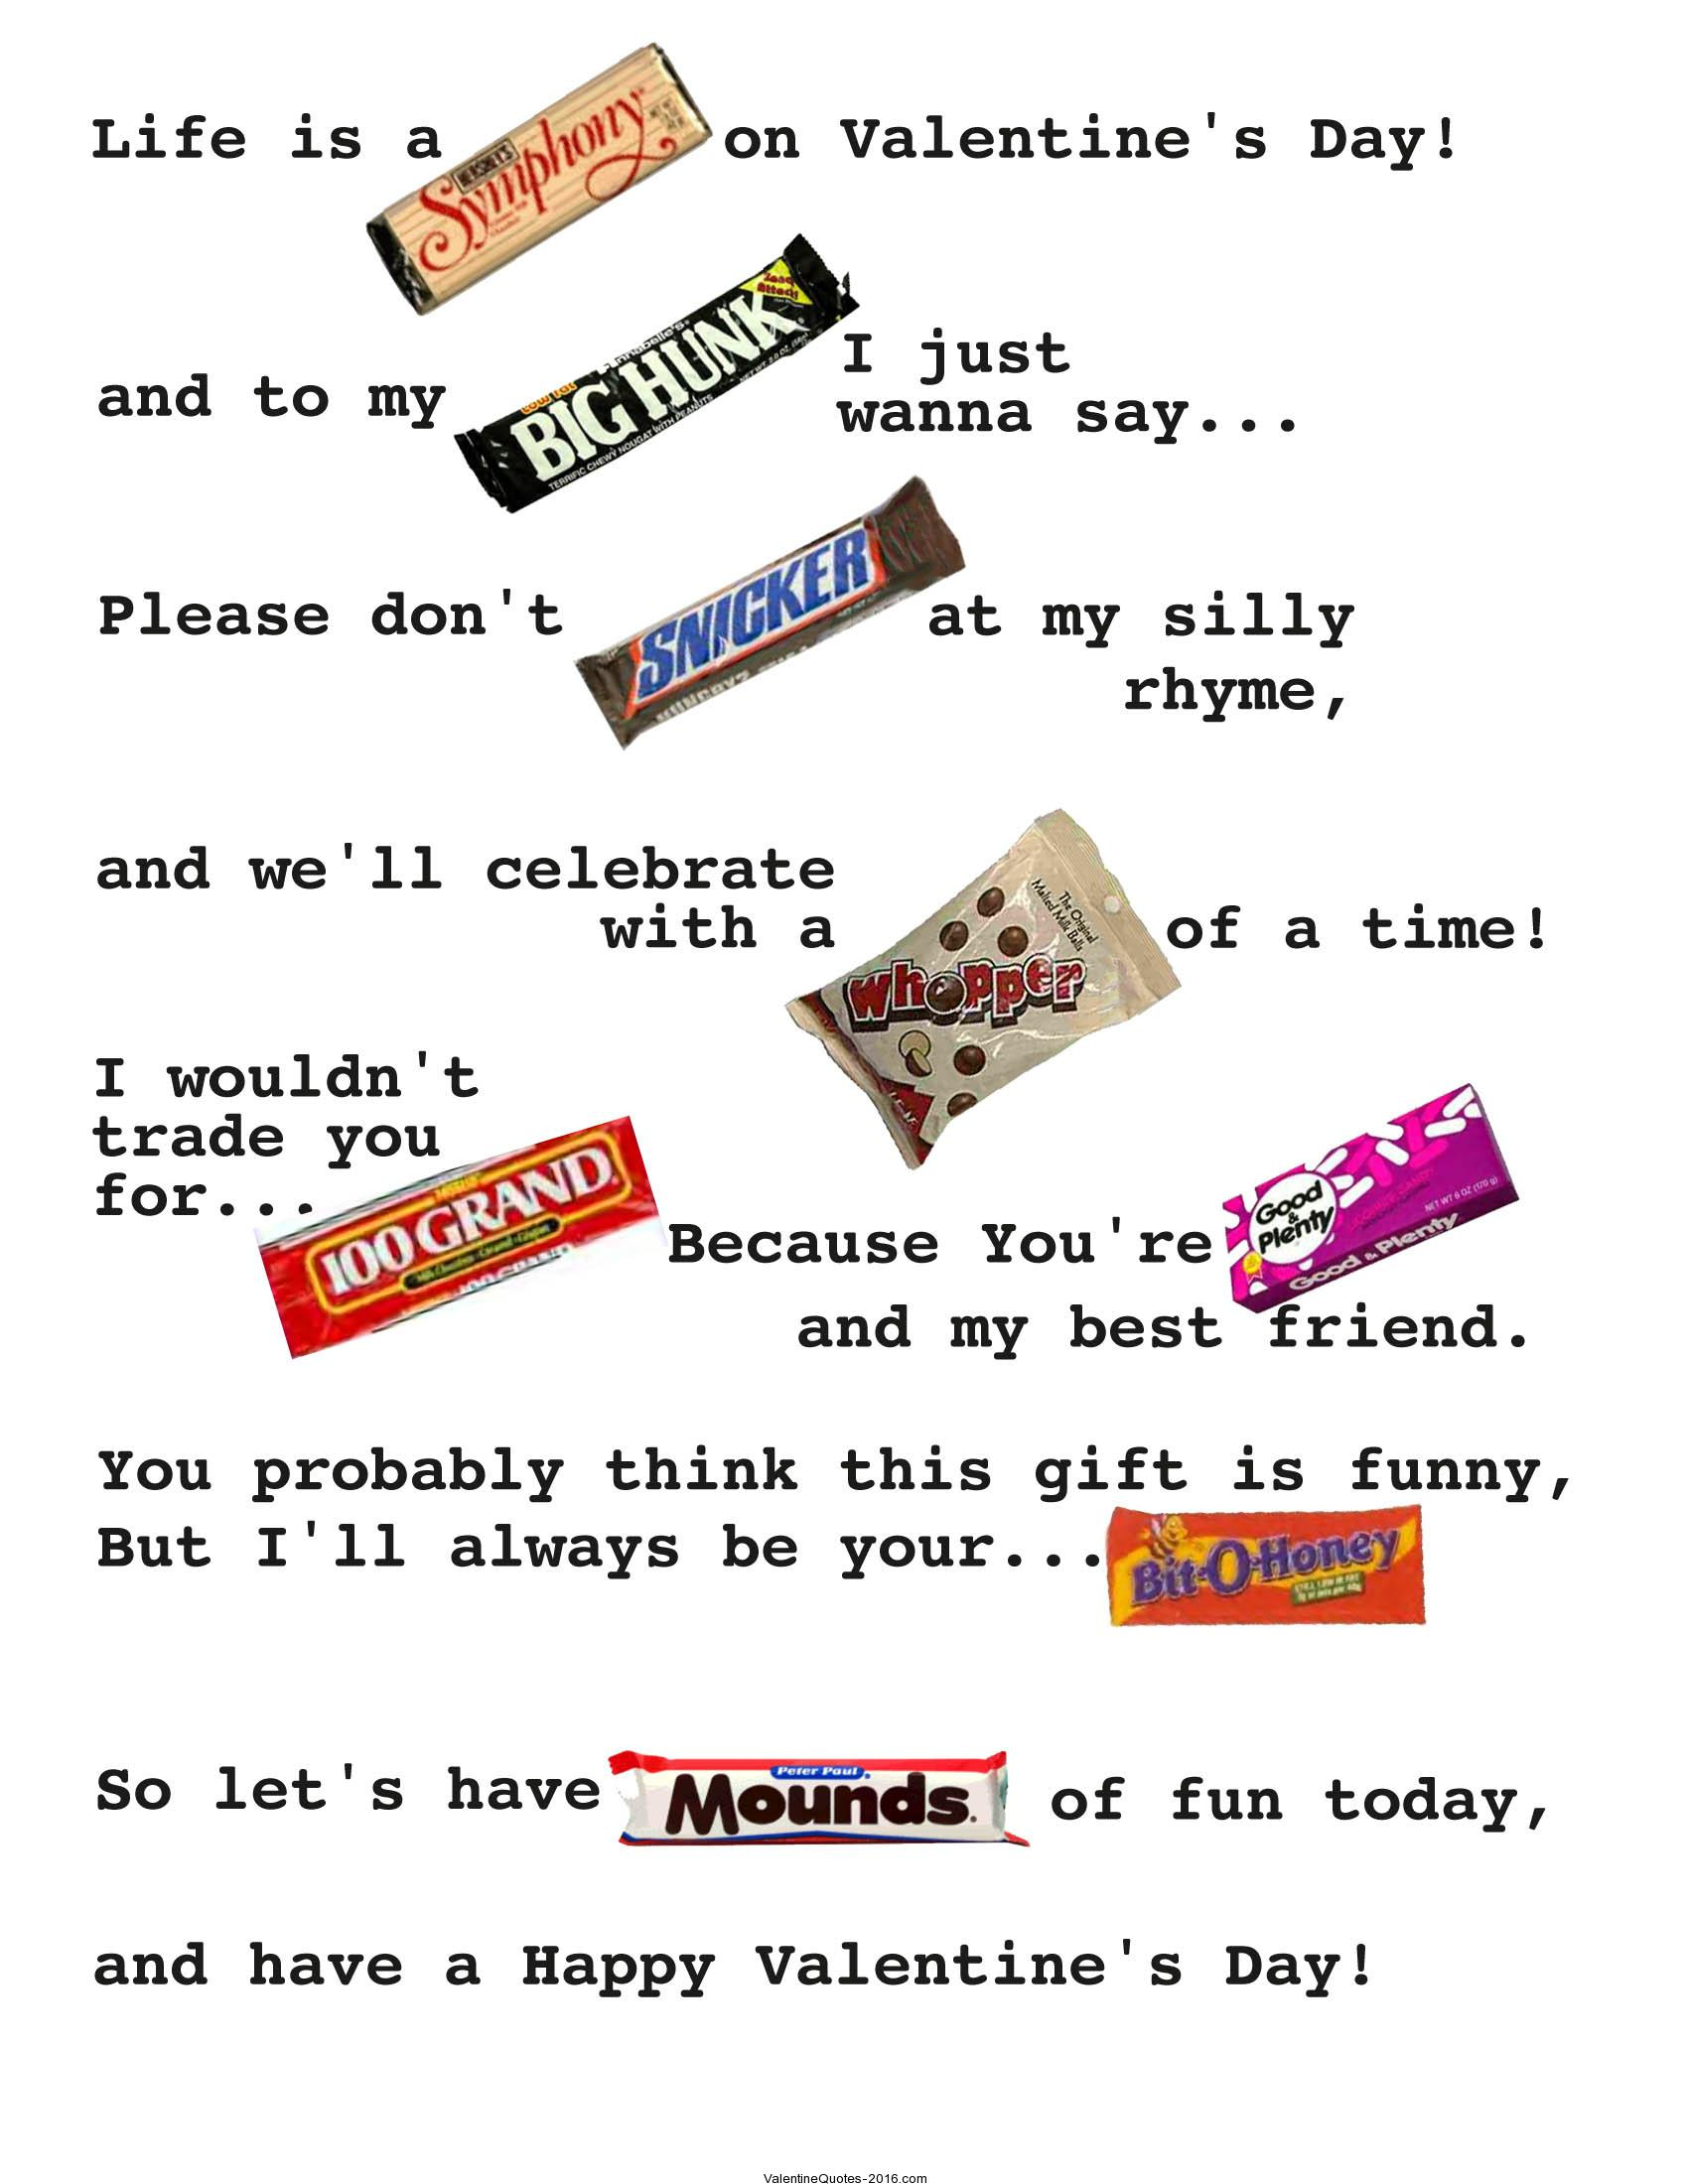 Funny Valentines Day Quotes For Friends | Gallery 14 February